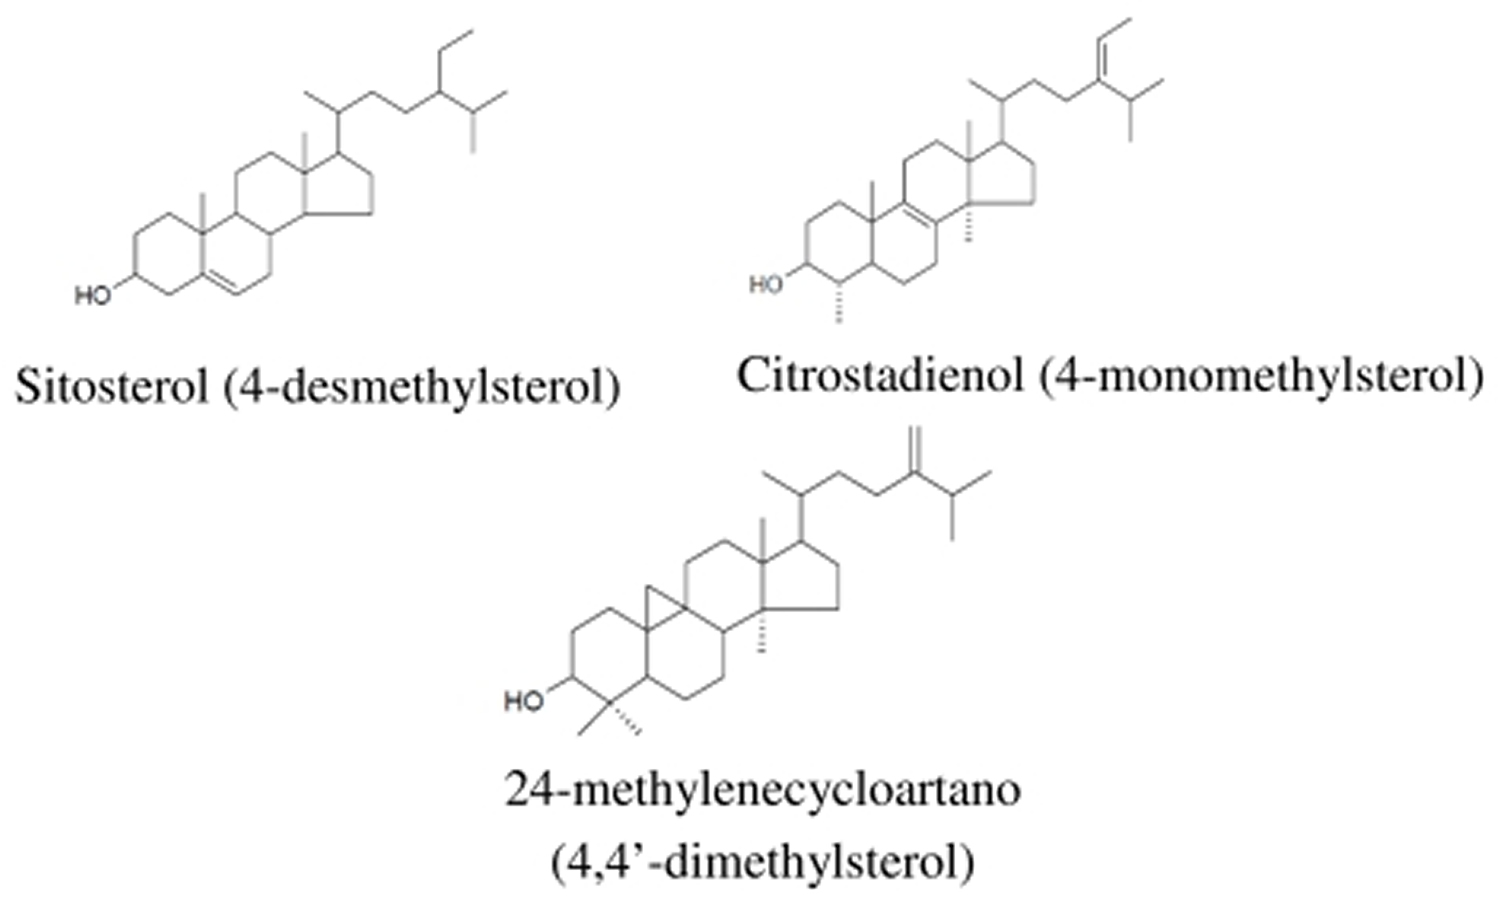 important phytosterols in olive oil